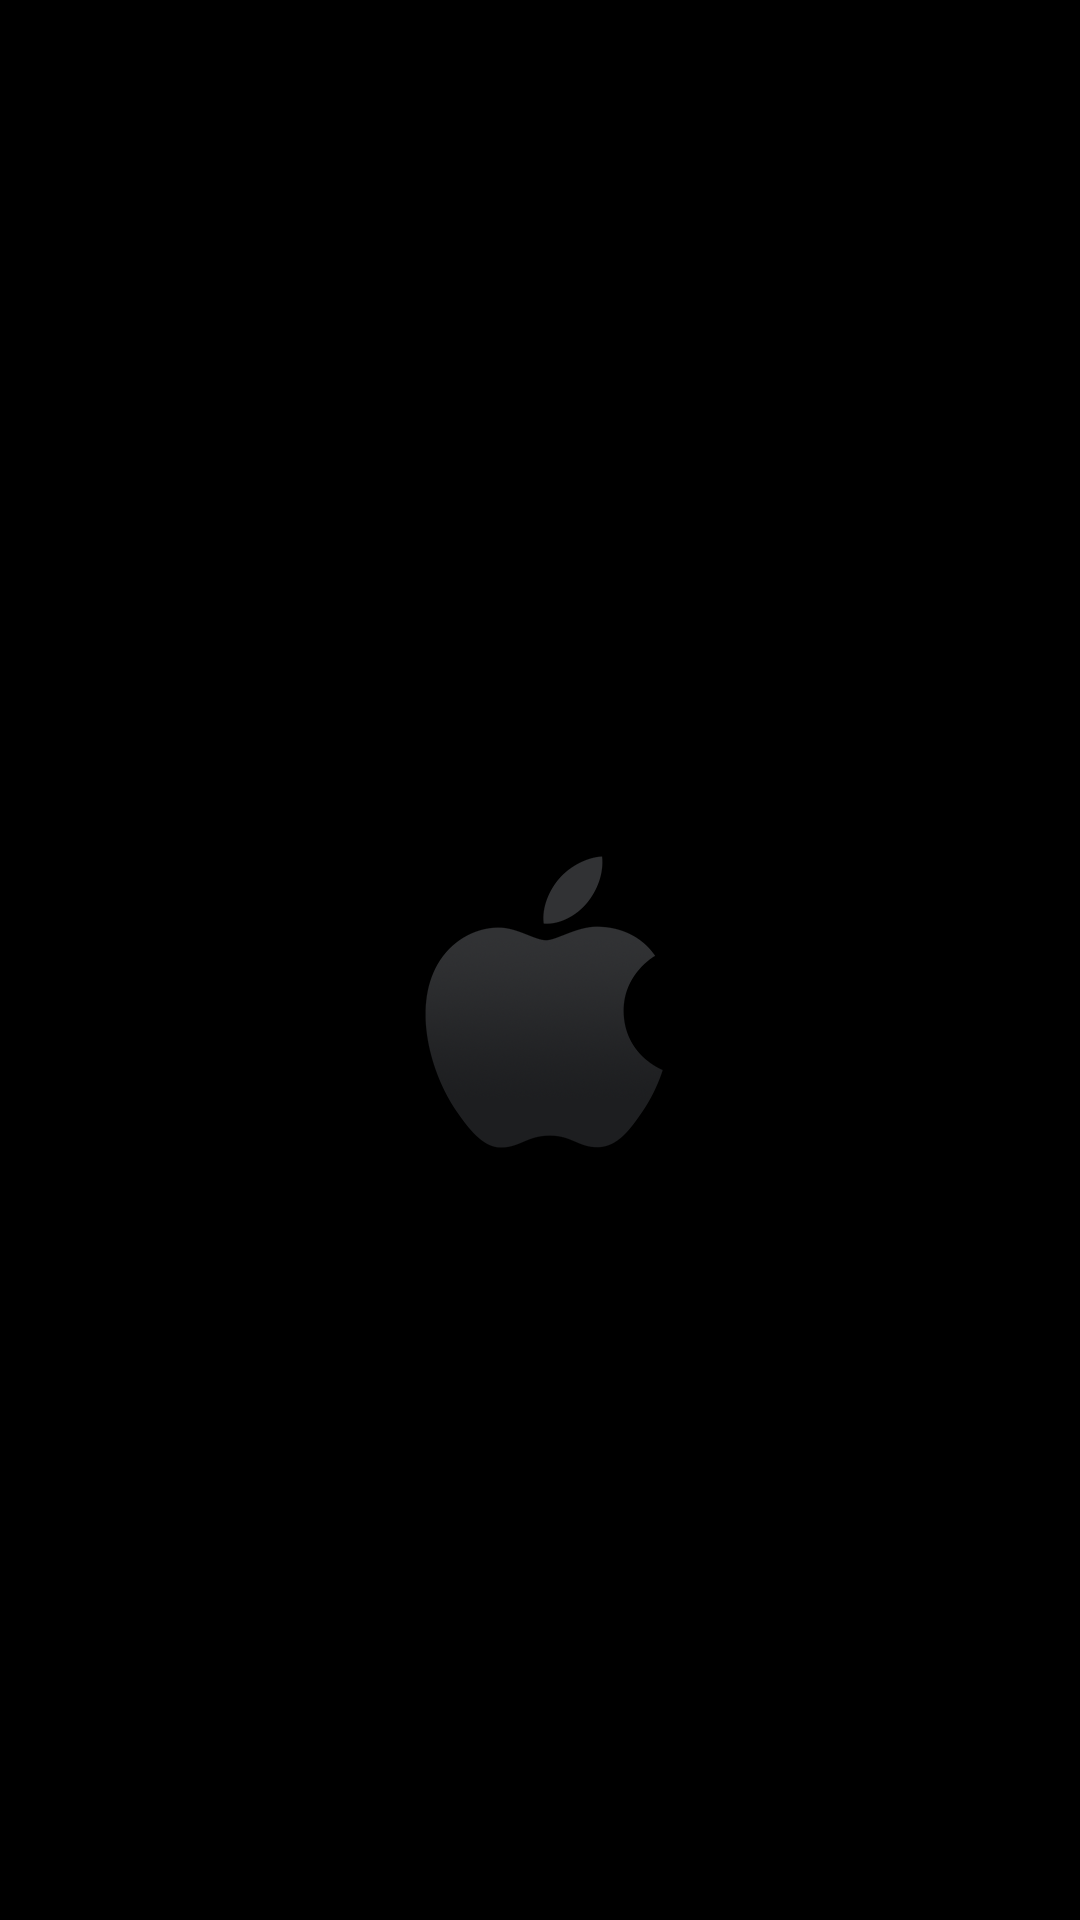 Black Apple Black Wallpaper Iphone Apple Wallpaper Apple Logo Wallpaper Iphone